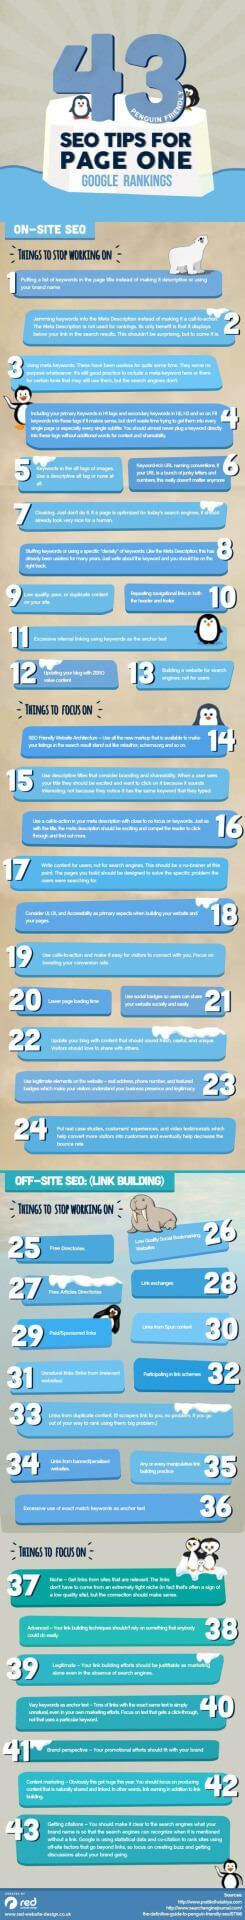 seo tips for 1st page